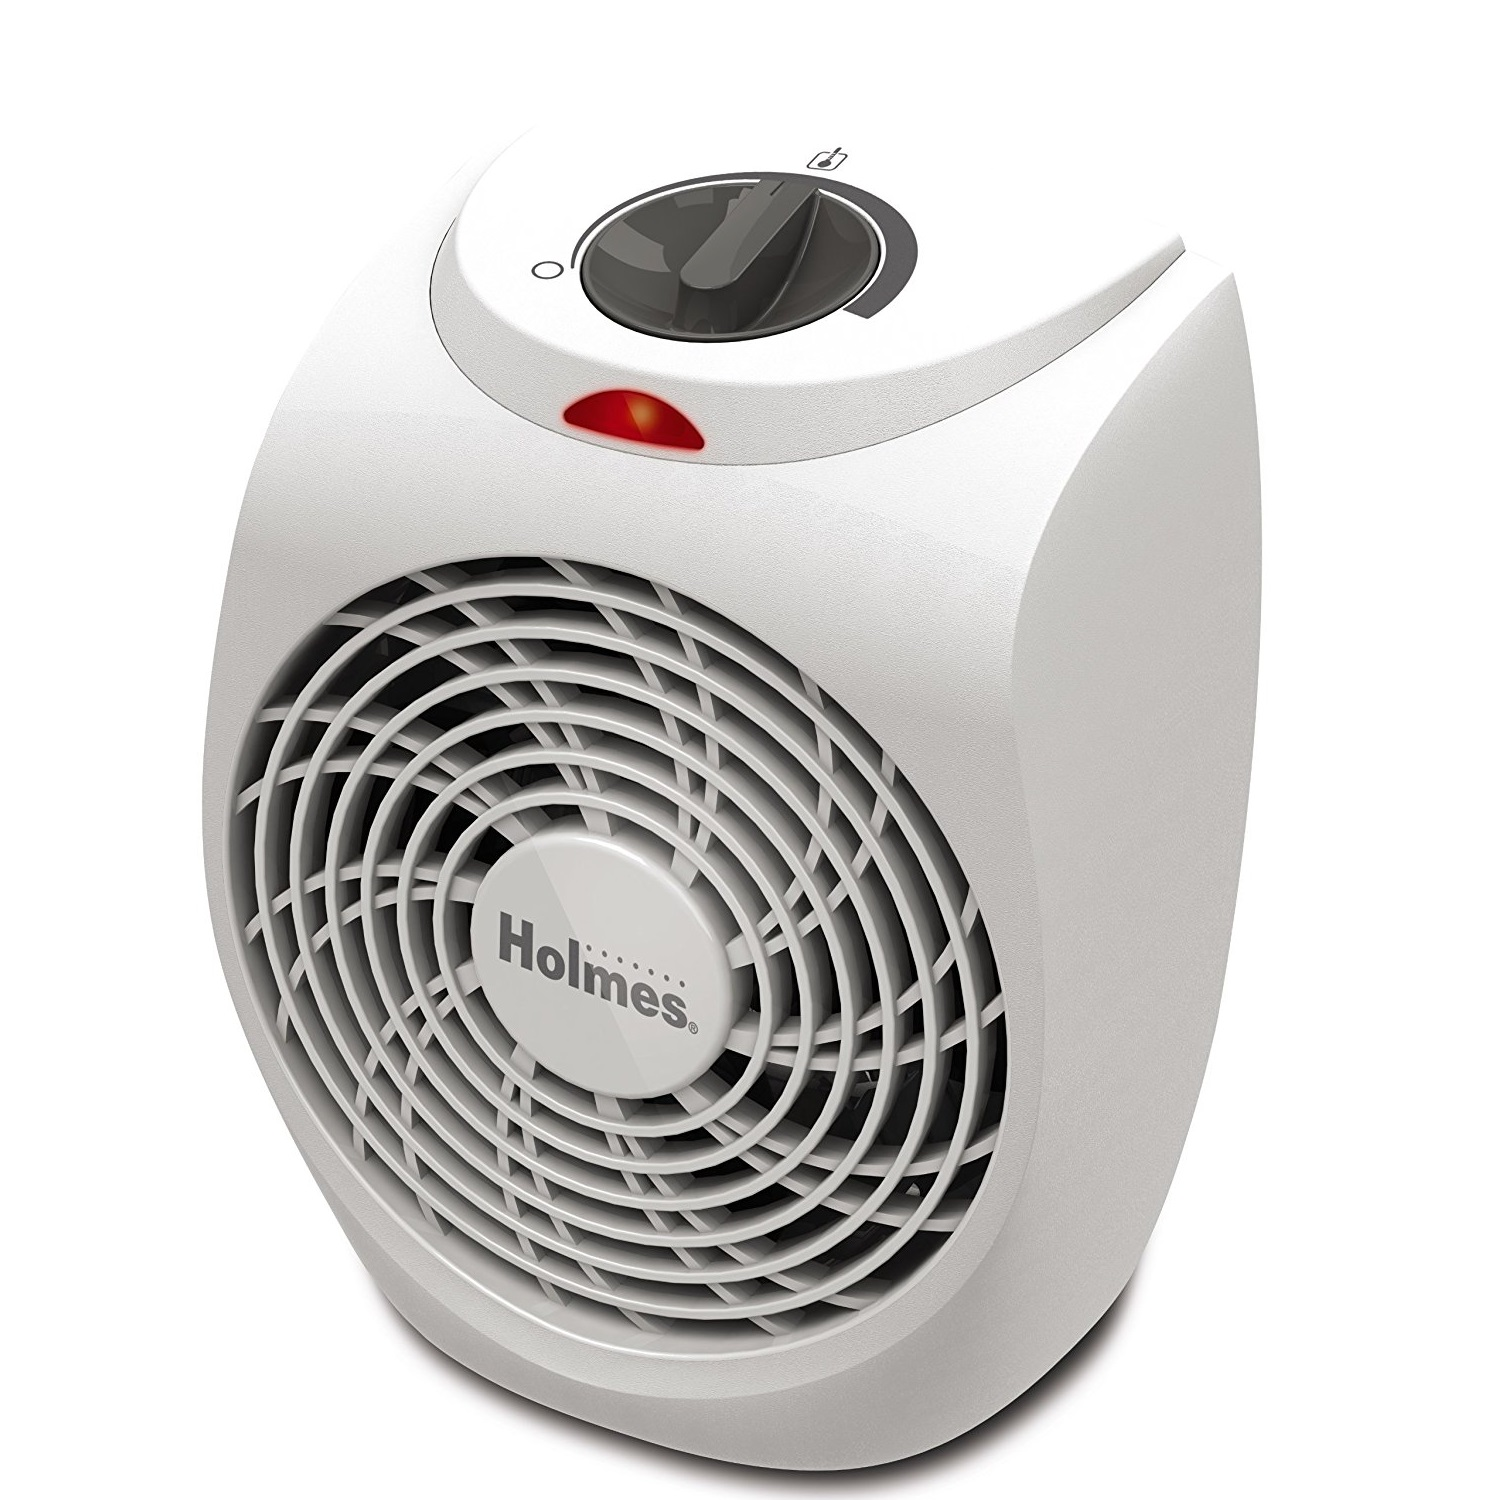 Holmes Compact Personal Fan Heater